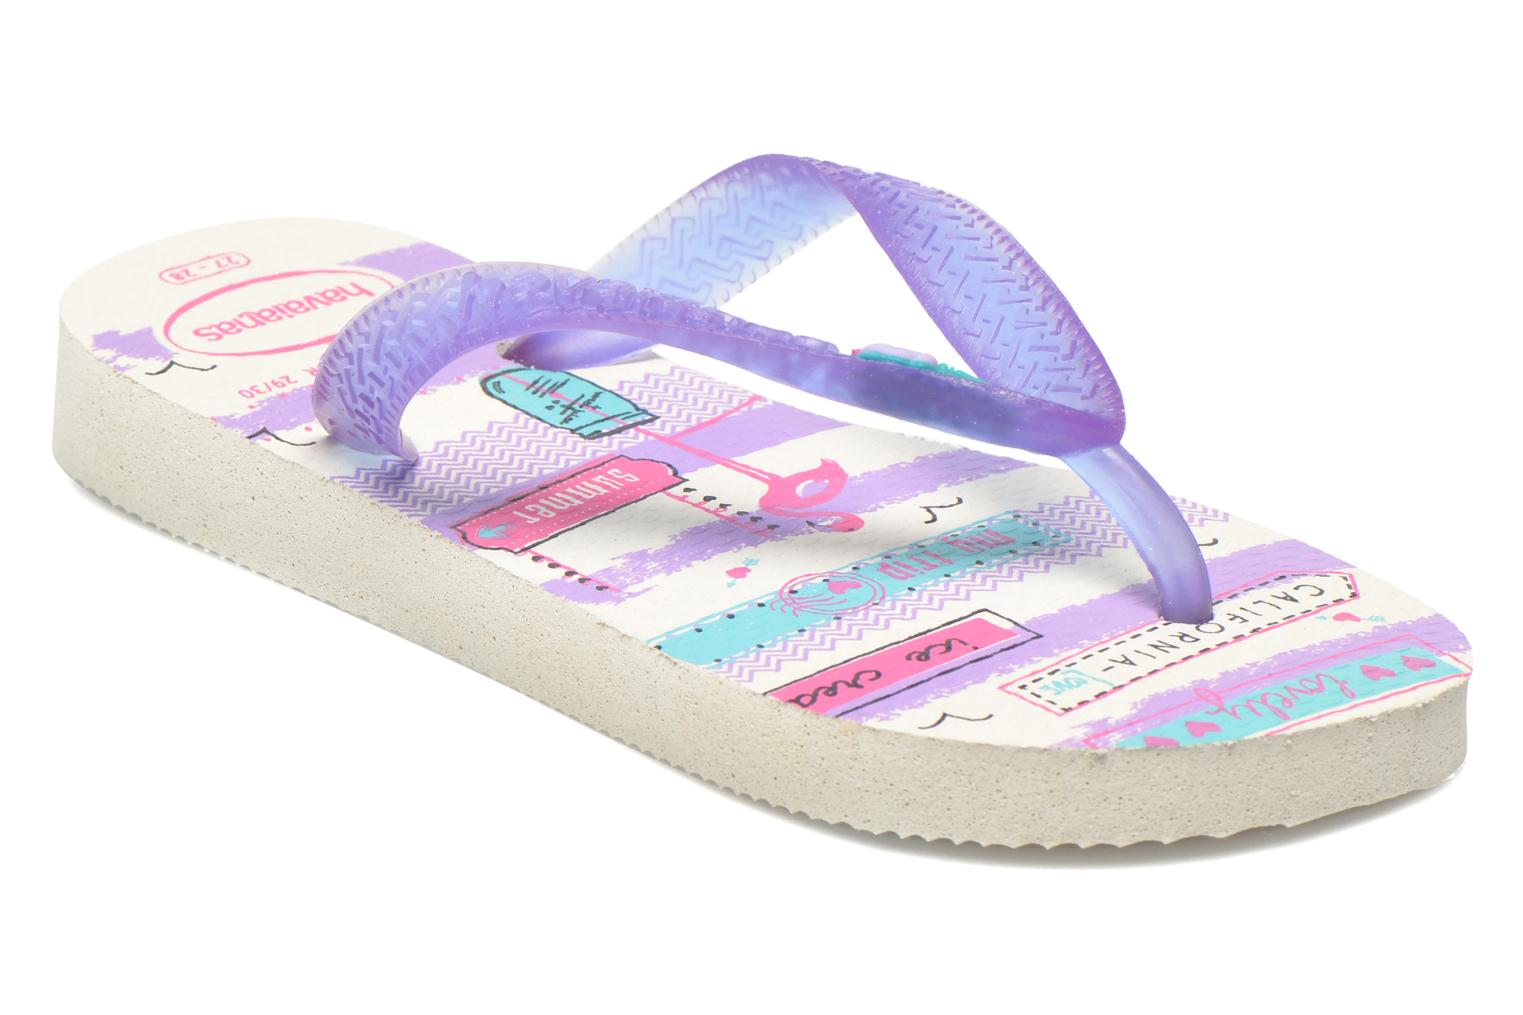 Kids Fantasy White/ purple